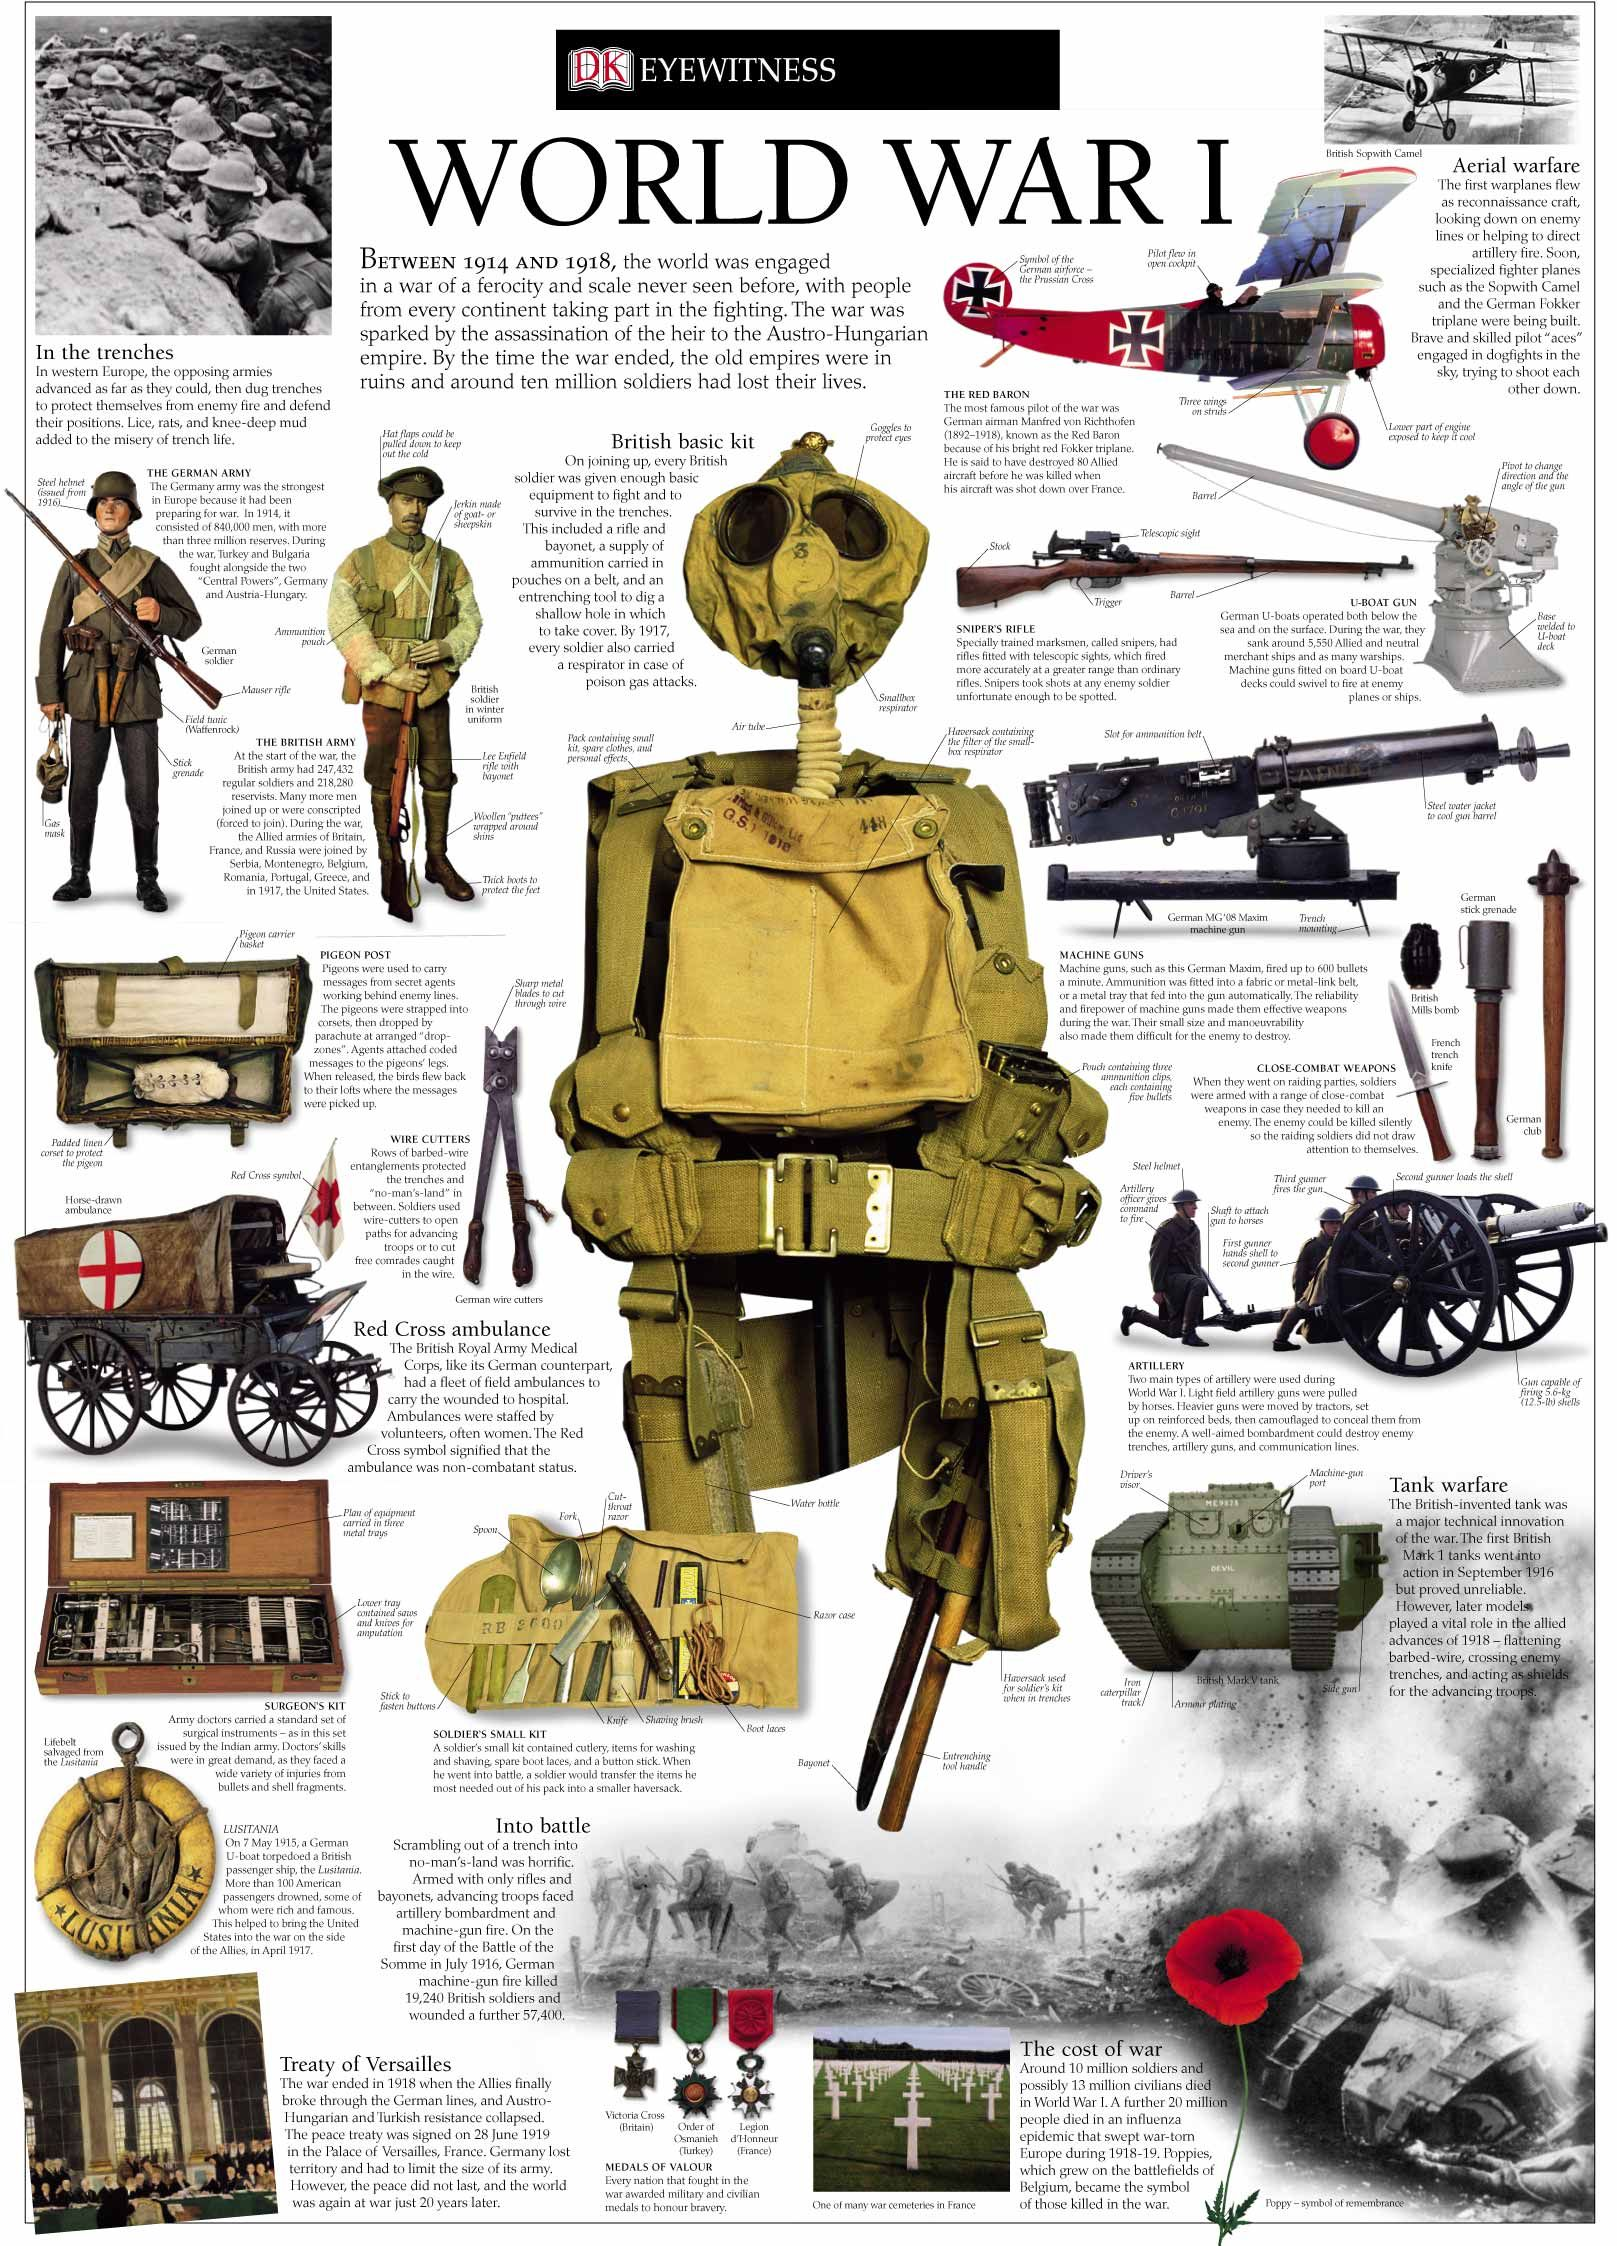 weapons of world war i essay The essay topics in this lesson move your students in closer to the causes of world war i, the way they operated individually, and the ways they interacted with each other topics about nationalism.